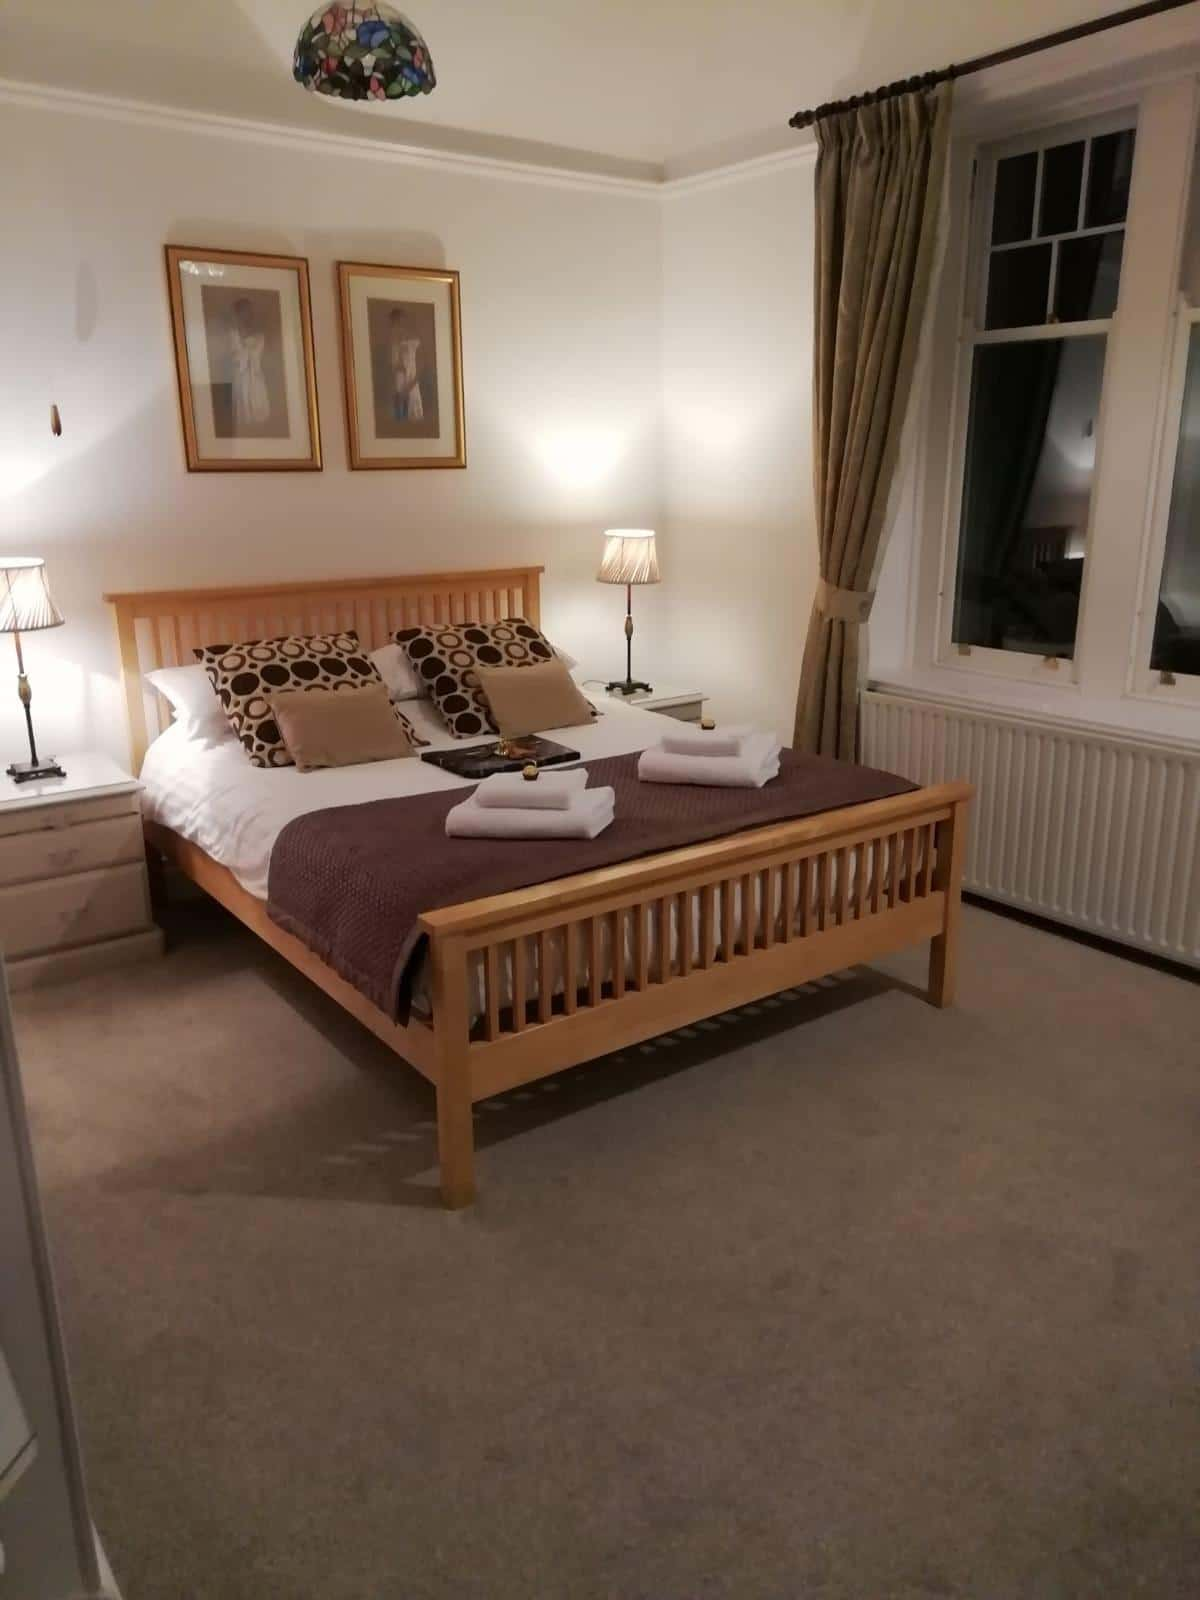 Guest house bedroom in Bassenthwaite near Keswick Superior Room 1